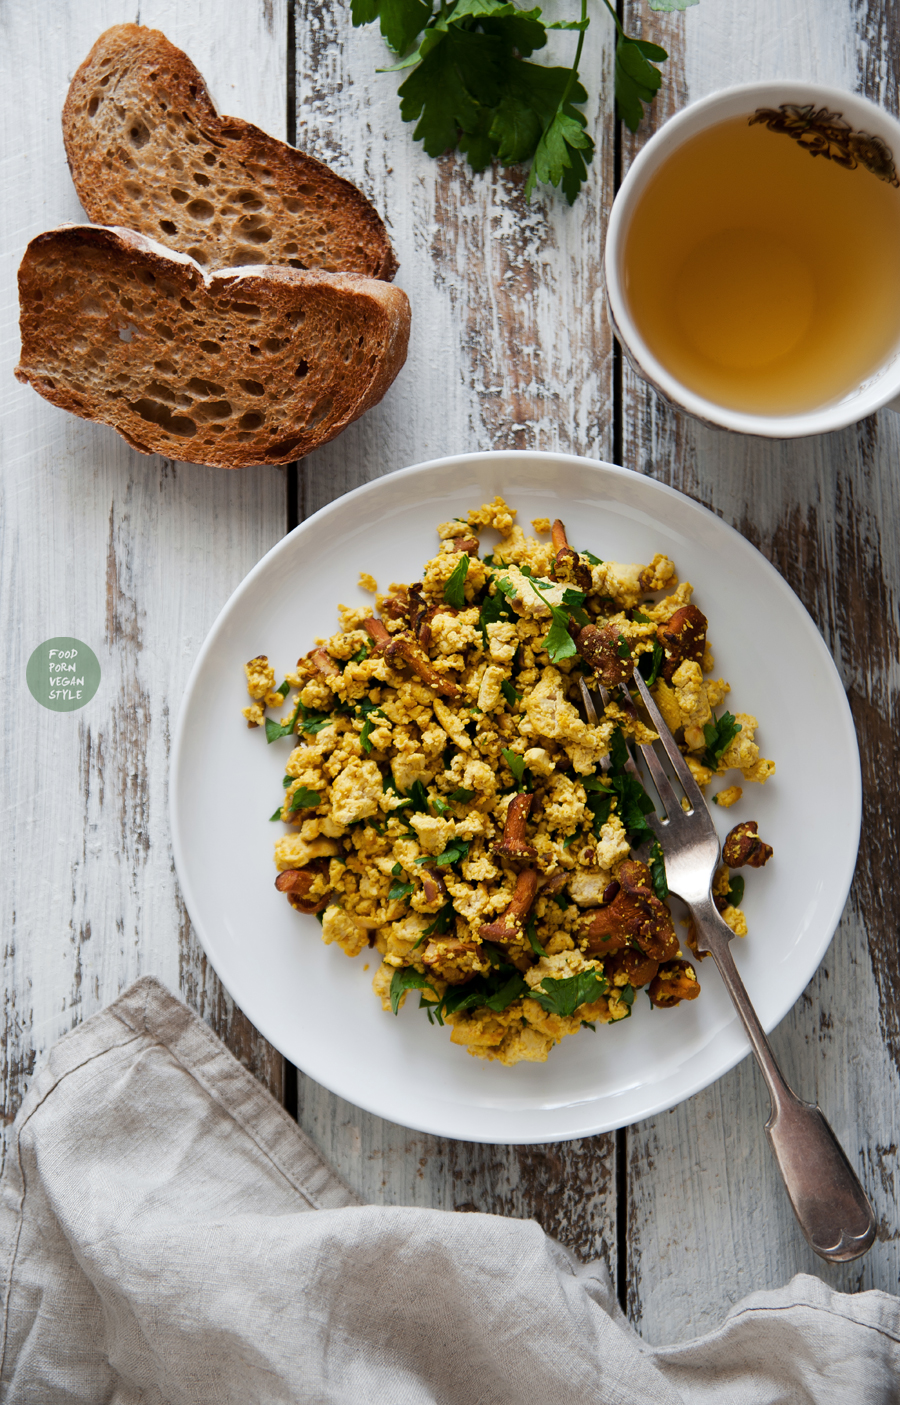 Tofu scramble with chanterelles and parsley